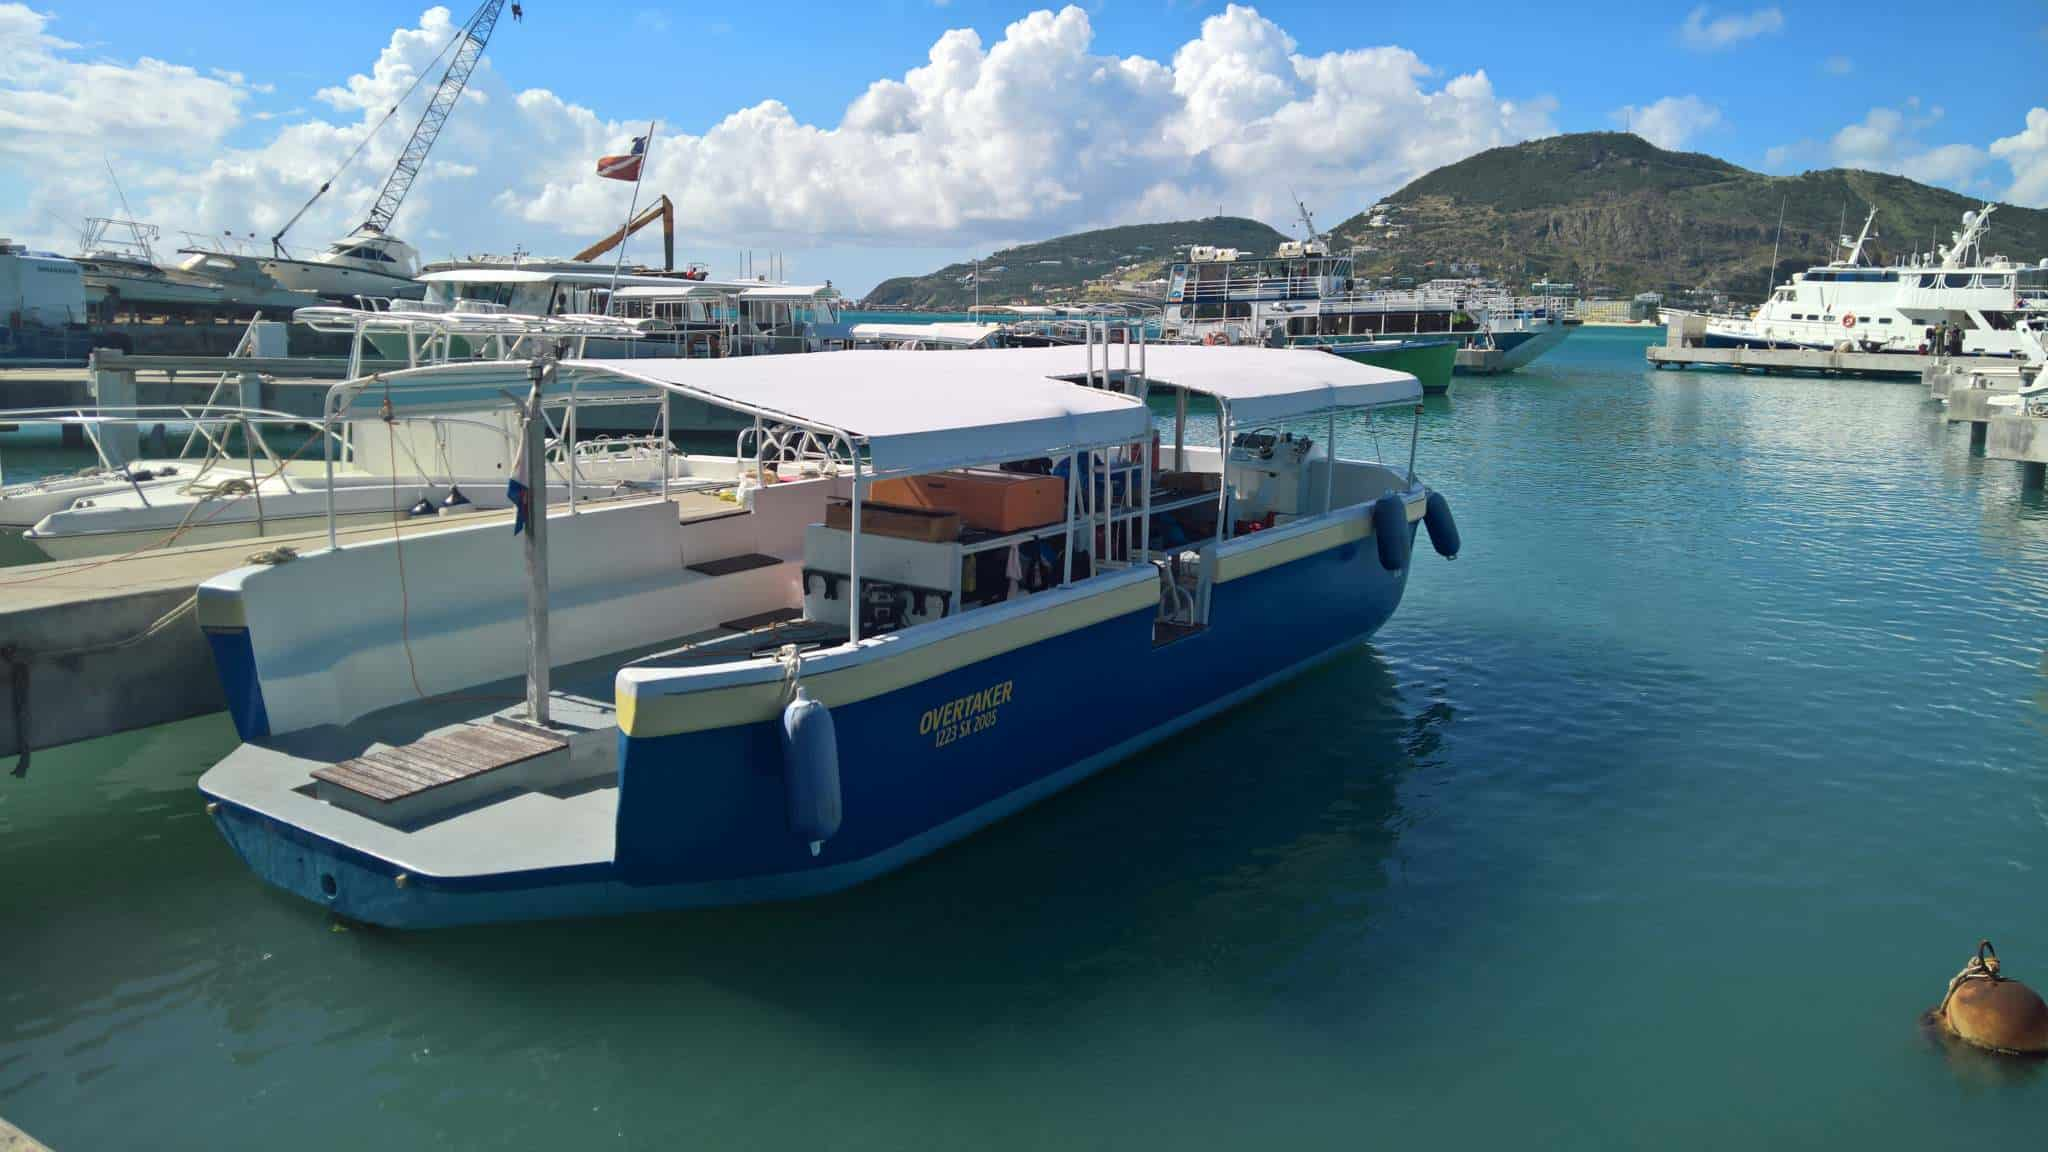 Our adorable boat; The Overtaker, SNUBA SXM, Sint Maarten